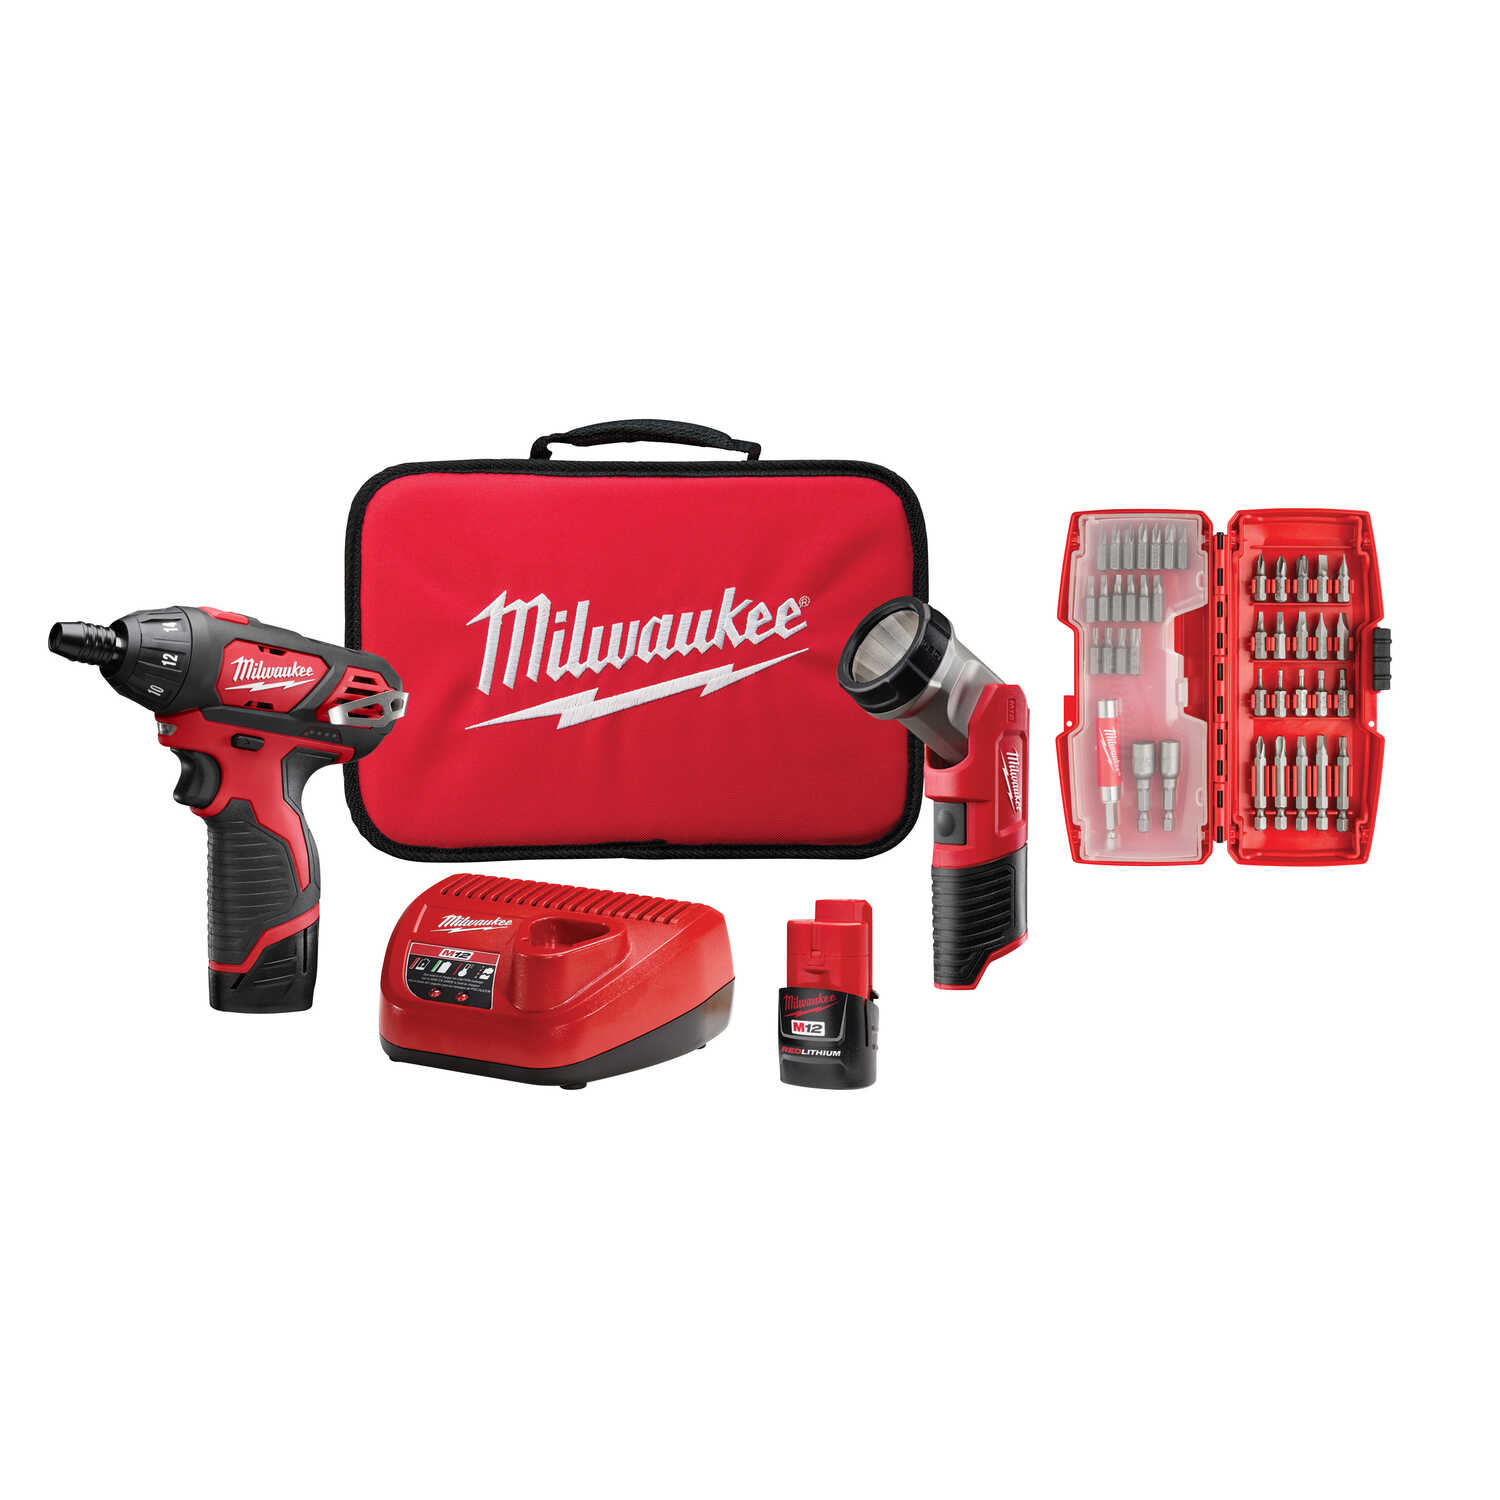 Milwaukee  M12  12 volt 1/4 in. Cordless Compact Drill/Driver  Kit 500 rpm 1 speed